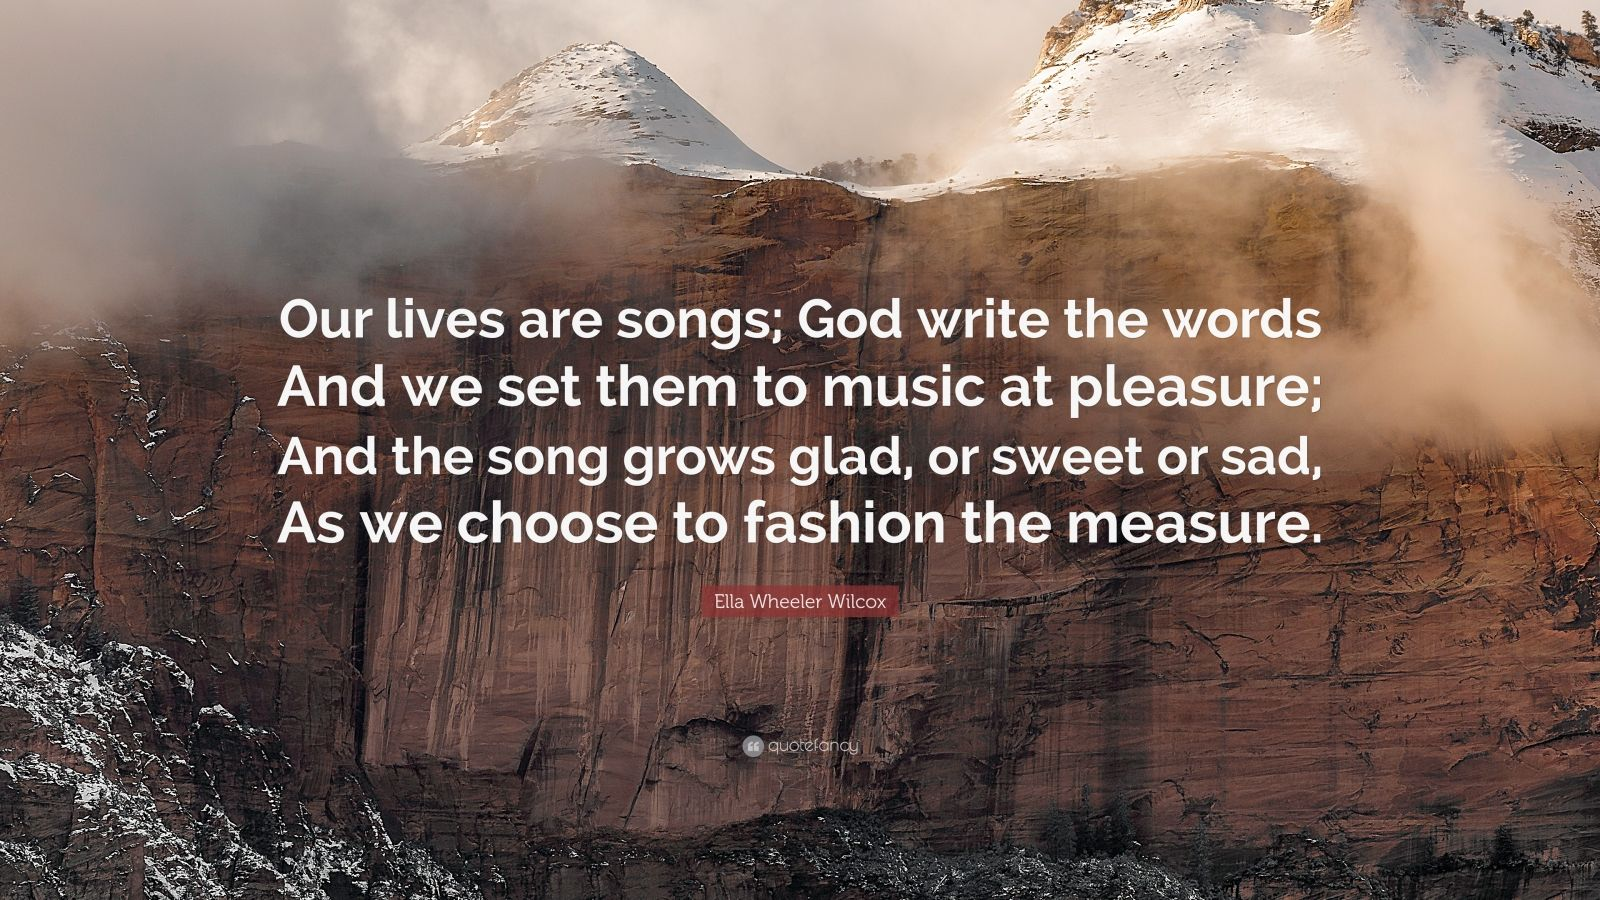 """Ella Wheeler Wilcox Quote: """"Our lives are songs; God write the words And we set them to music at pleasure; And the song grows glad, or sweet or sad, As we choose to fashion the measure."""""""